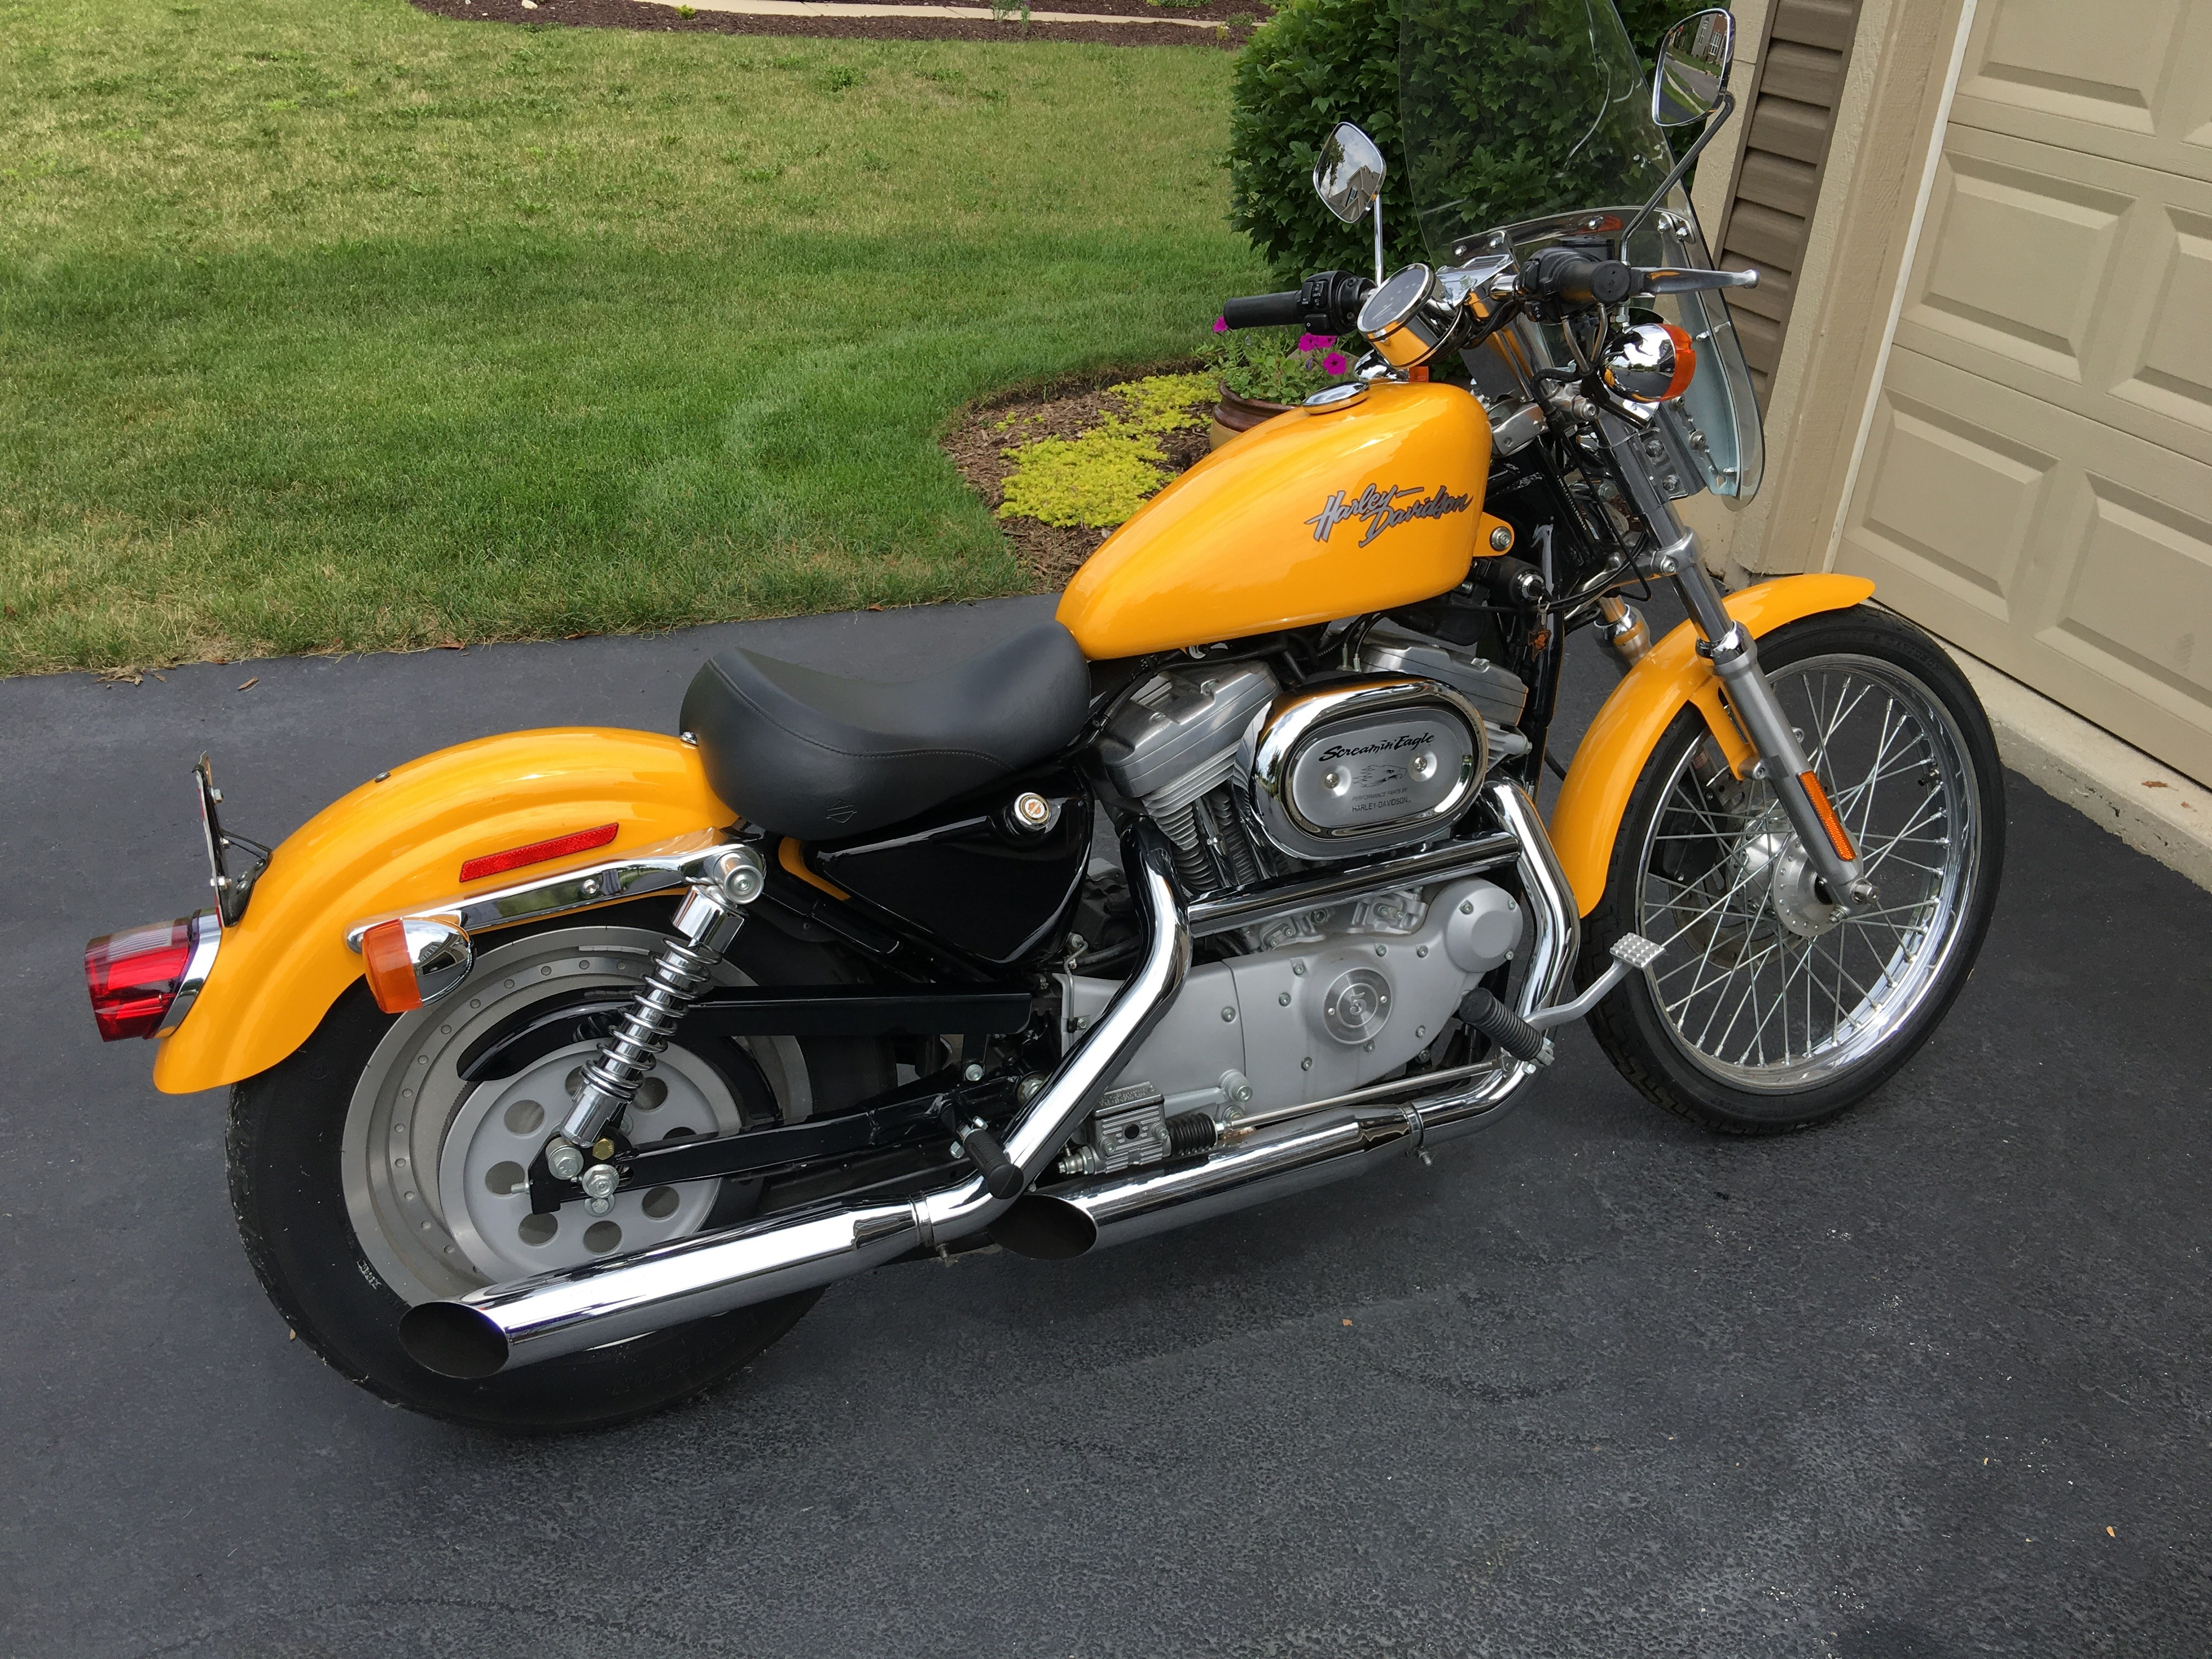 2001 harley davidson xl883c sportster 883 custom yellow woodstock illinois 657628. Black Bedroom Furniture Sets. Home Design Ideas